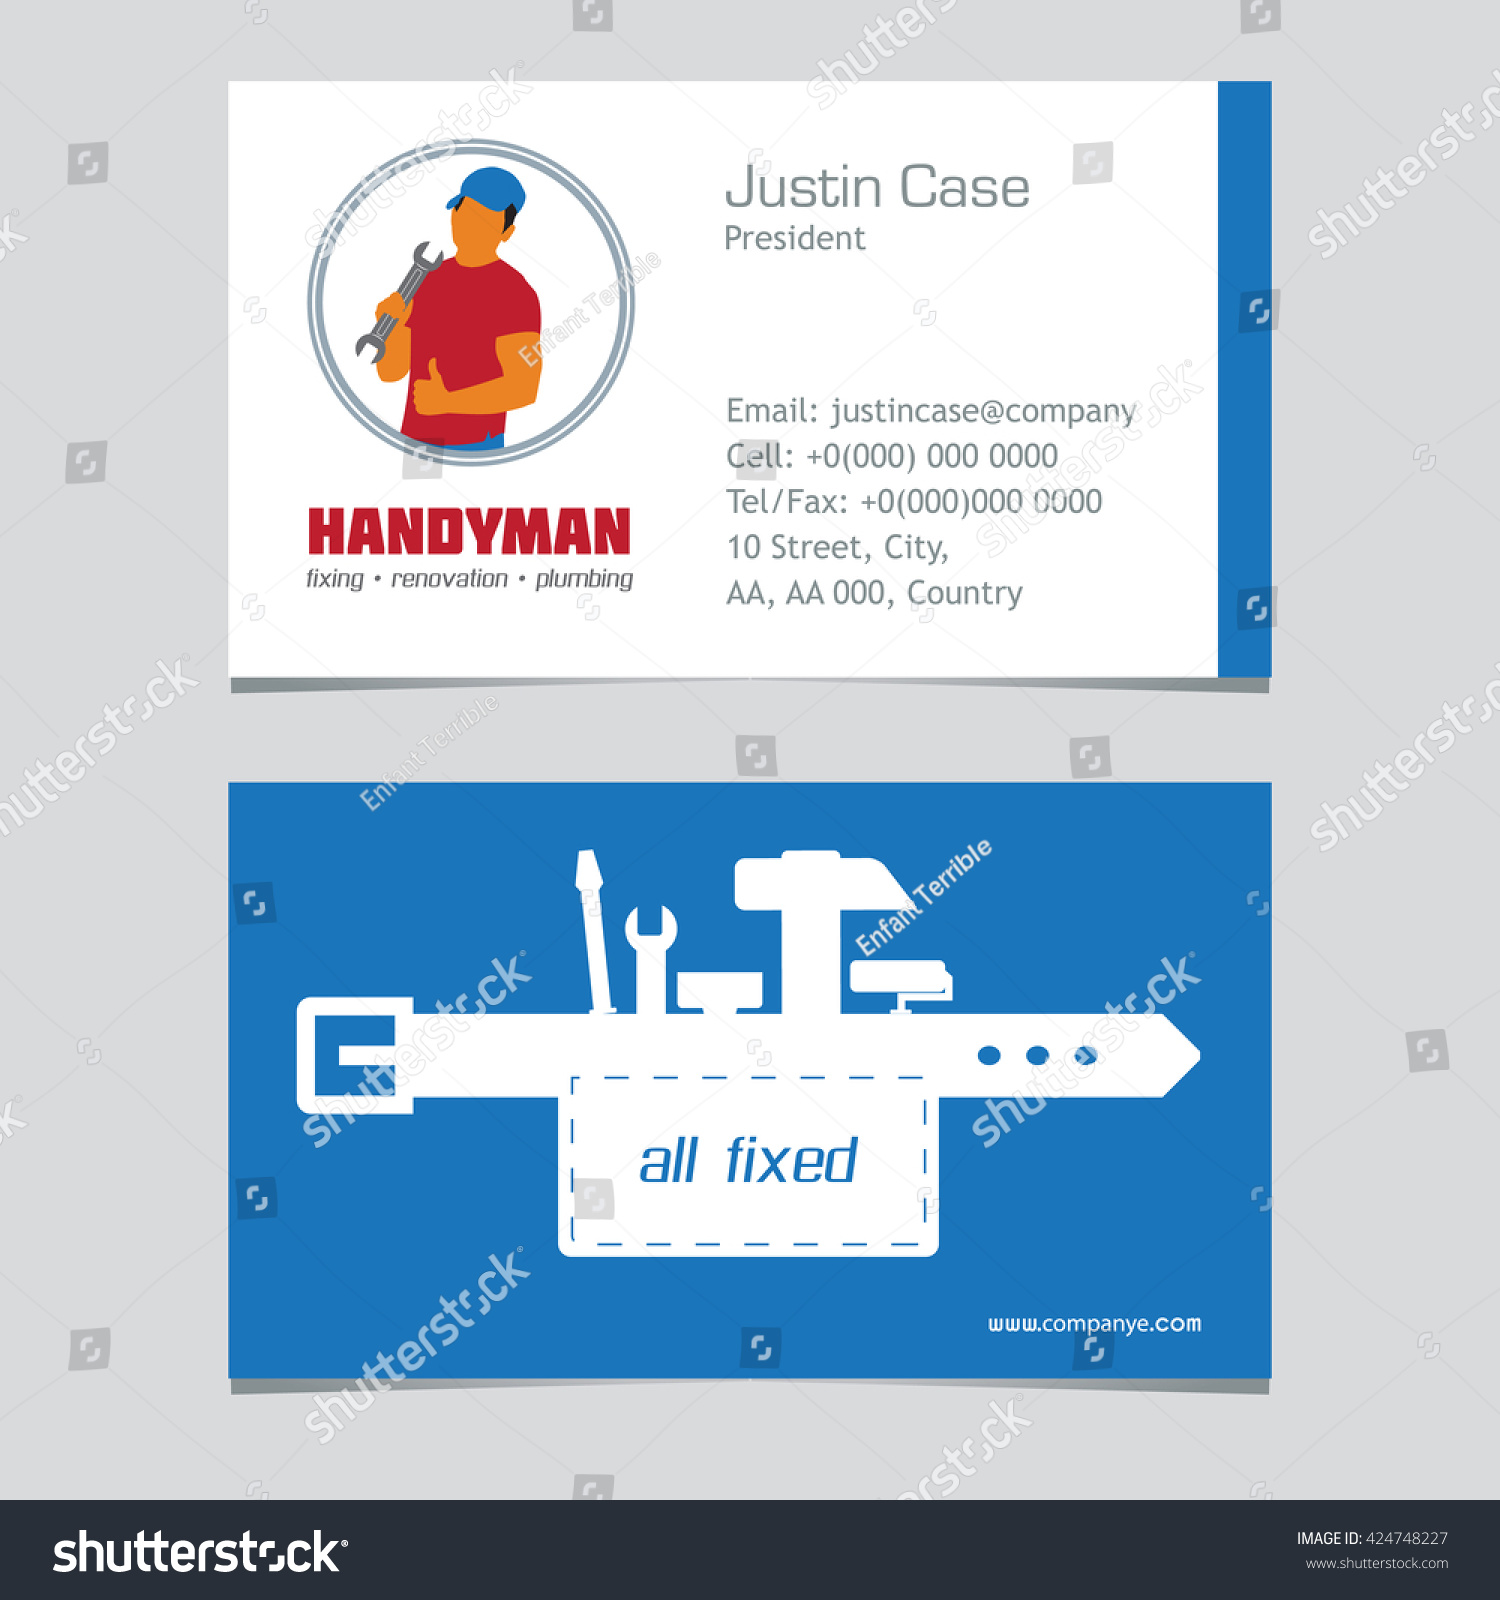 Lovely Stock Of Handyman Business Cards - Business Cards and ...